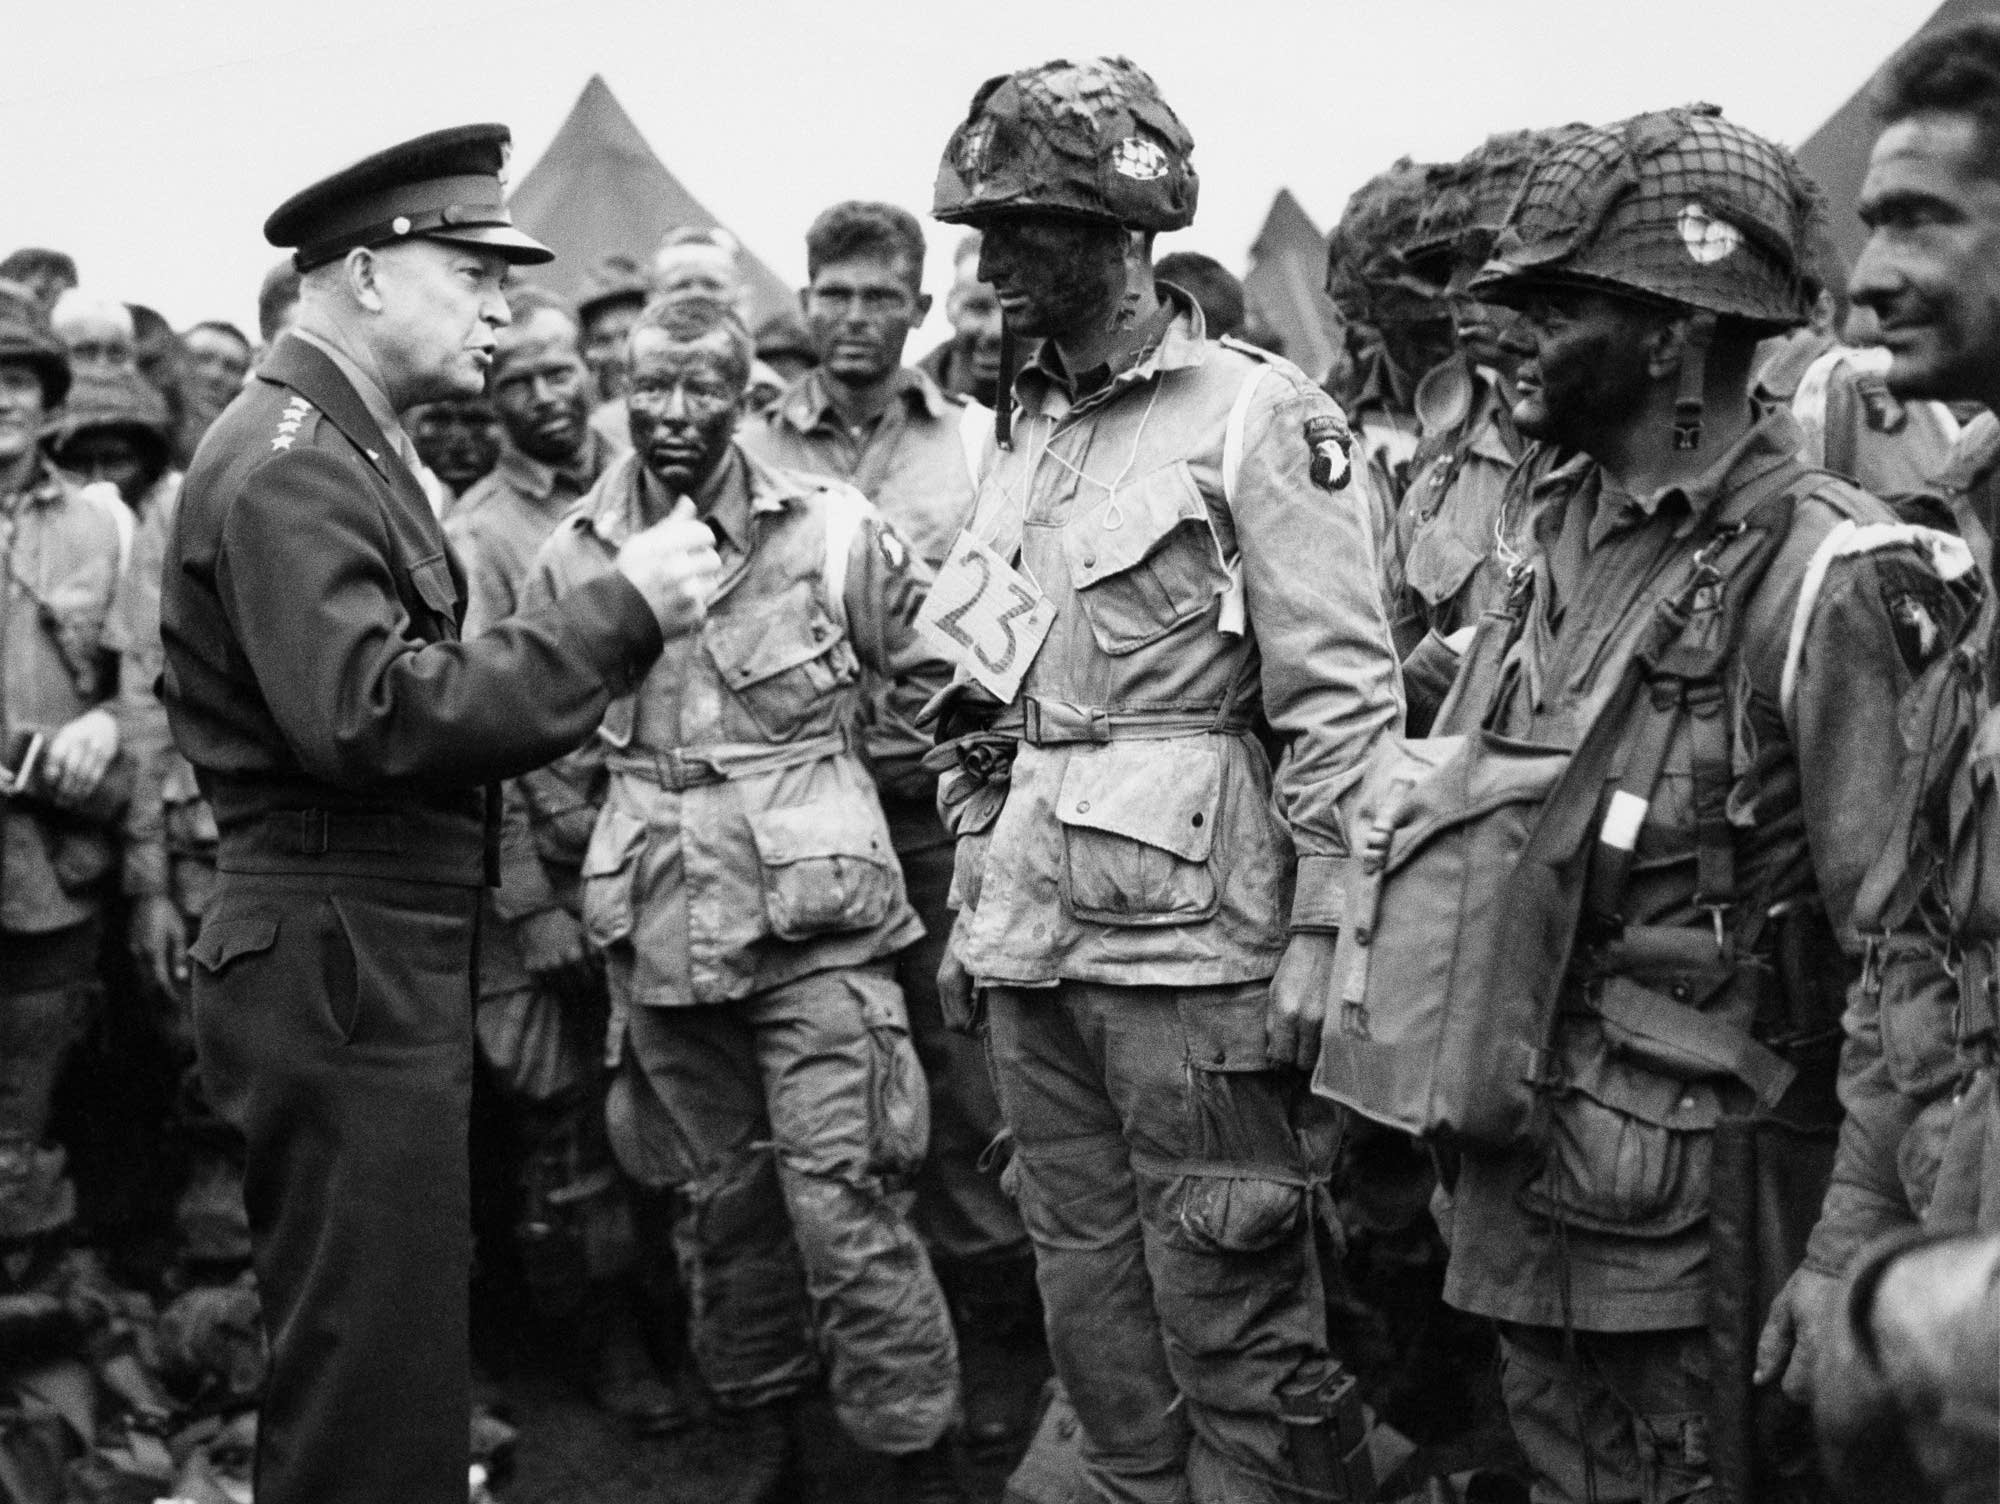 U.S. Gen. Dwight D. Eisenhower gives orders to paratroopers on D-Day